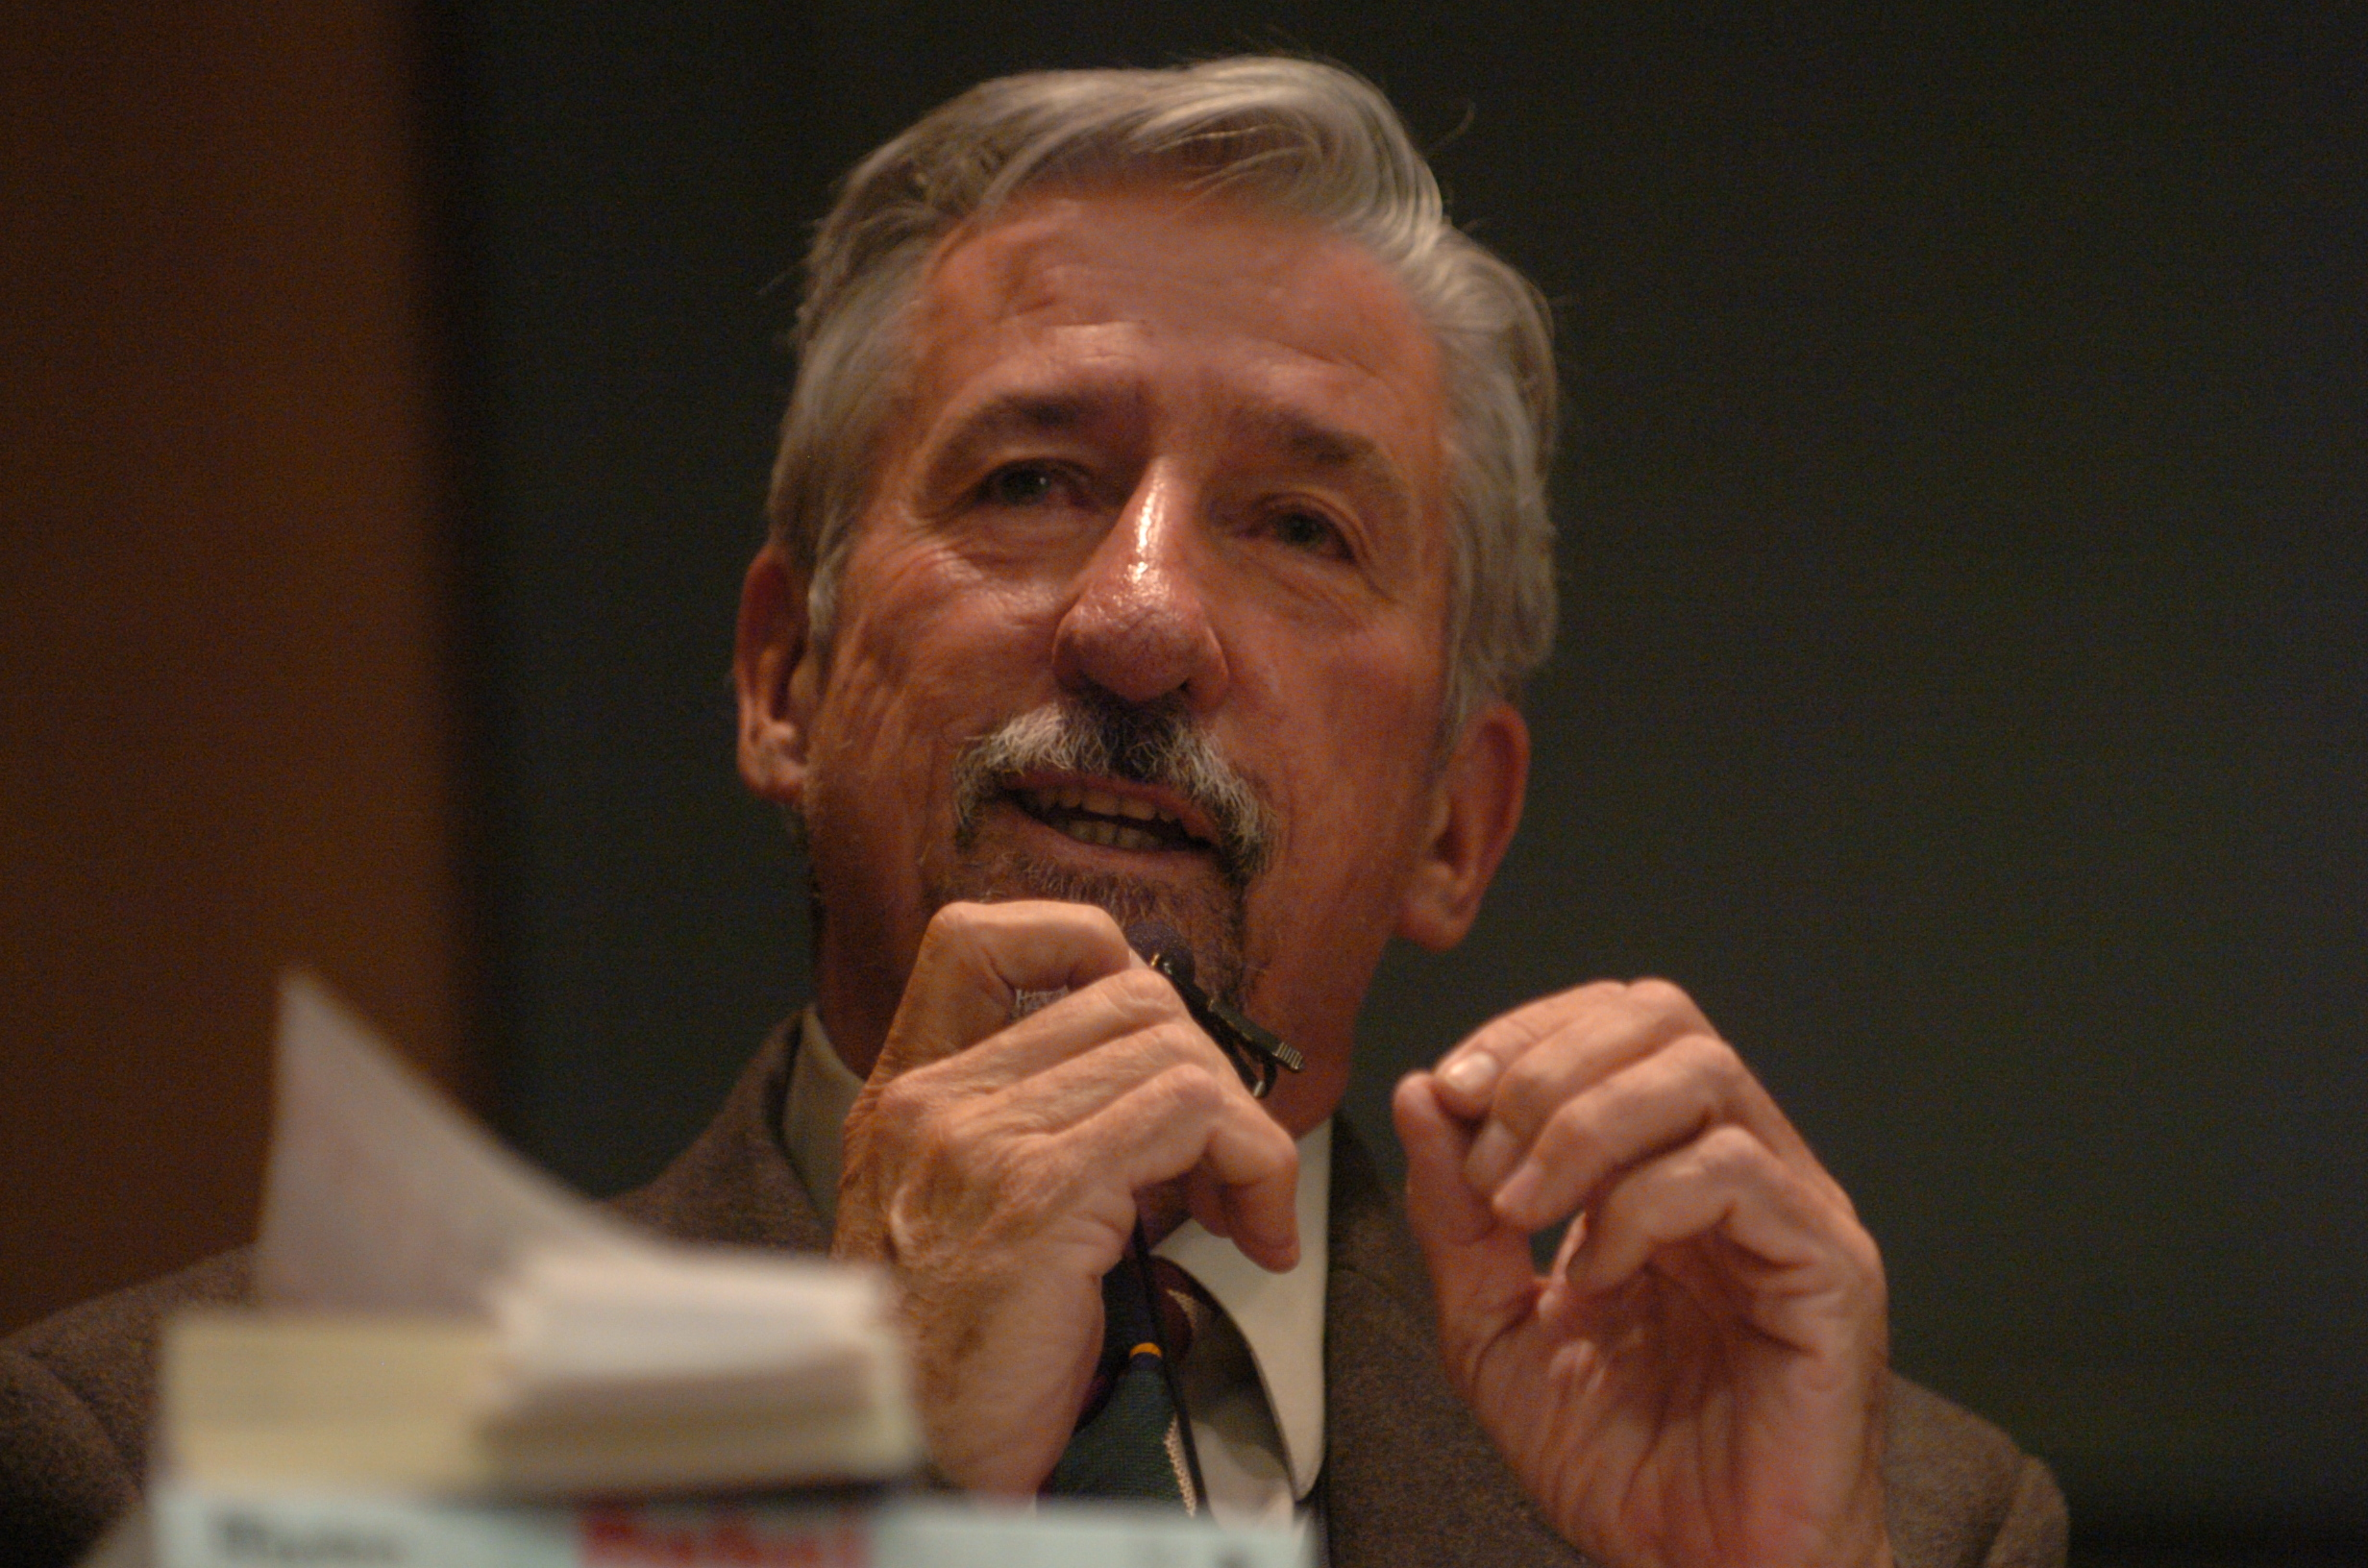 Tom Hayden at 40th Anniversary Commemoration of University of Michigan Teach-In, March 2005 image